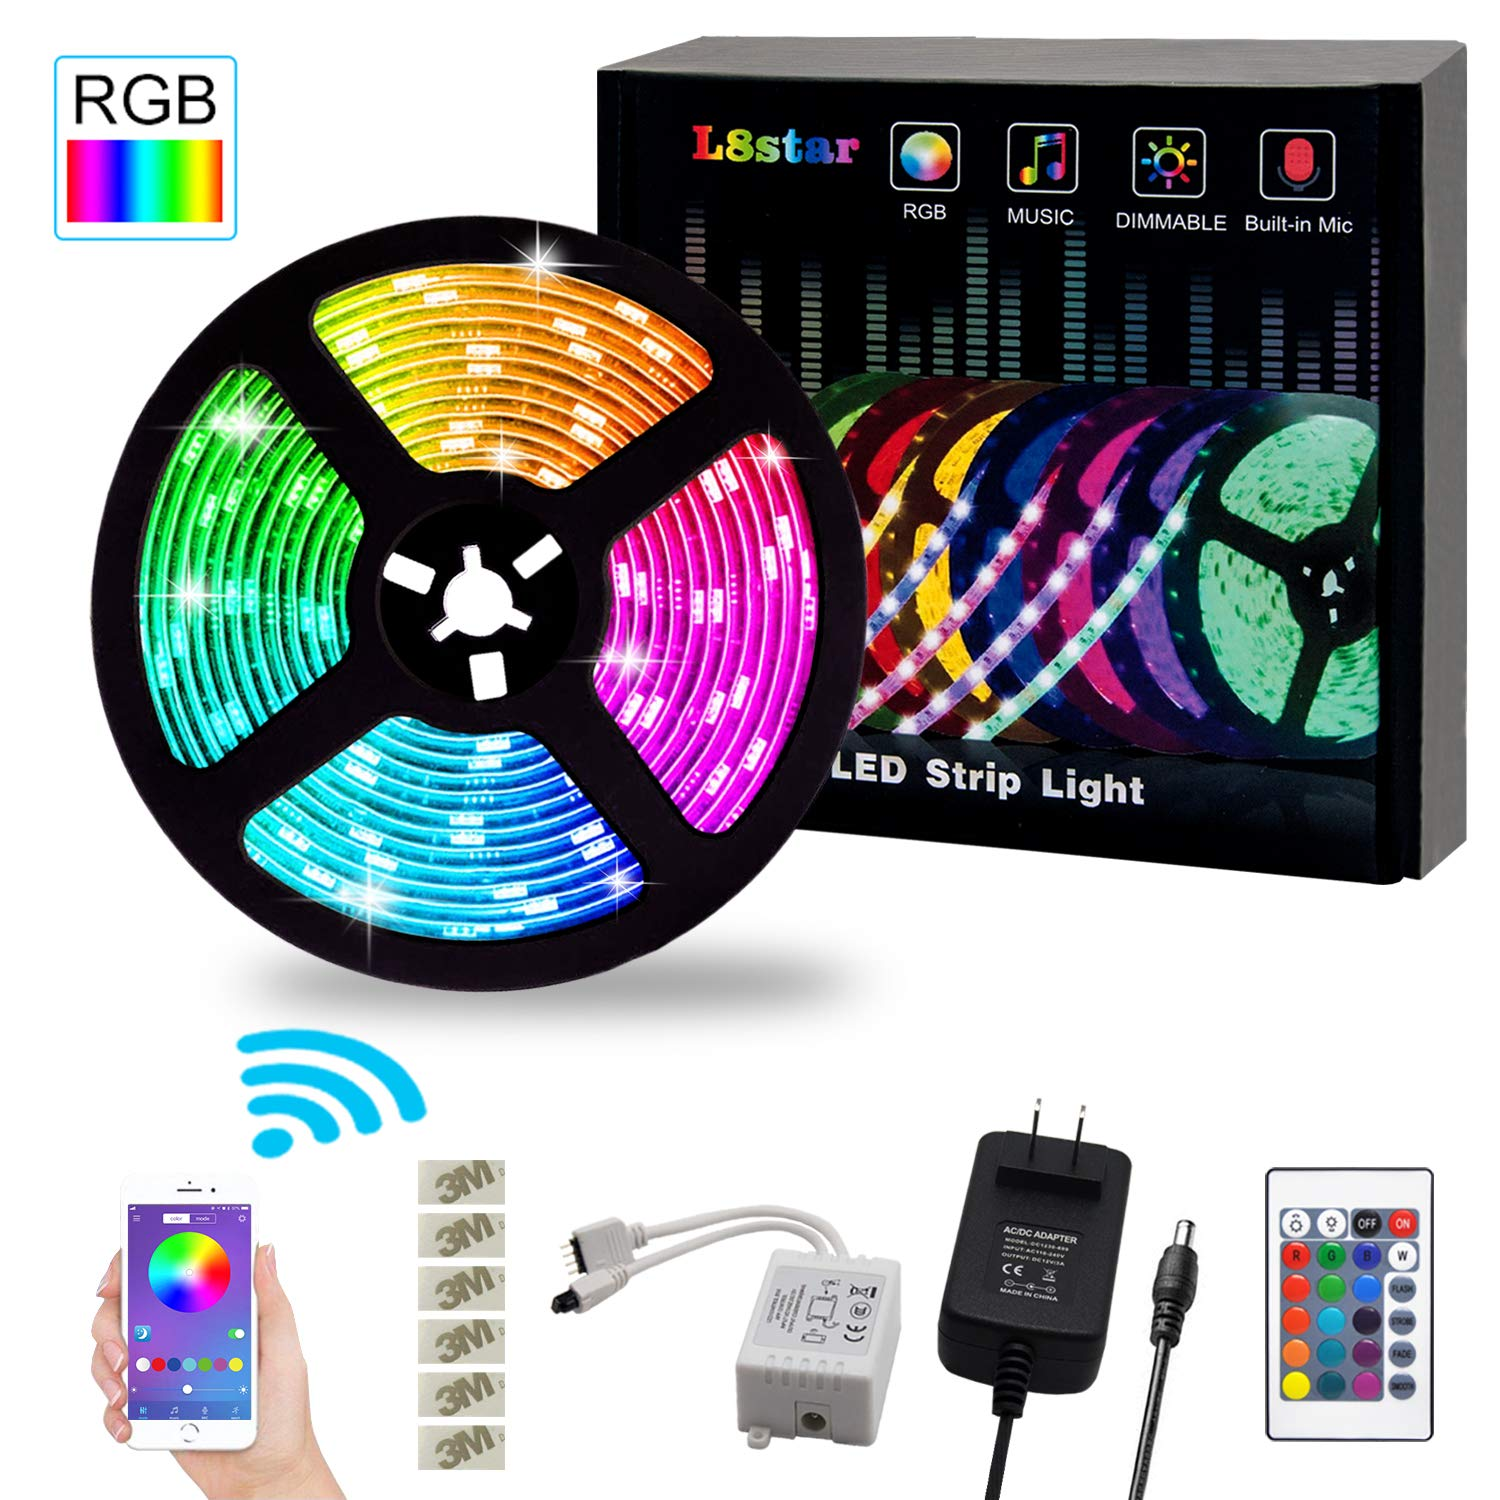 Led Strip Lights L8star Color Changing Rgb Rope Lights 32 8ft 5050 Light Strip Sync With Music Remote Control Apply For Tv Bedroom Party And Home